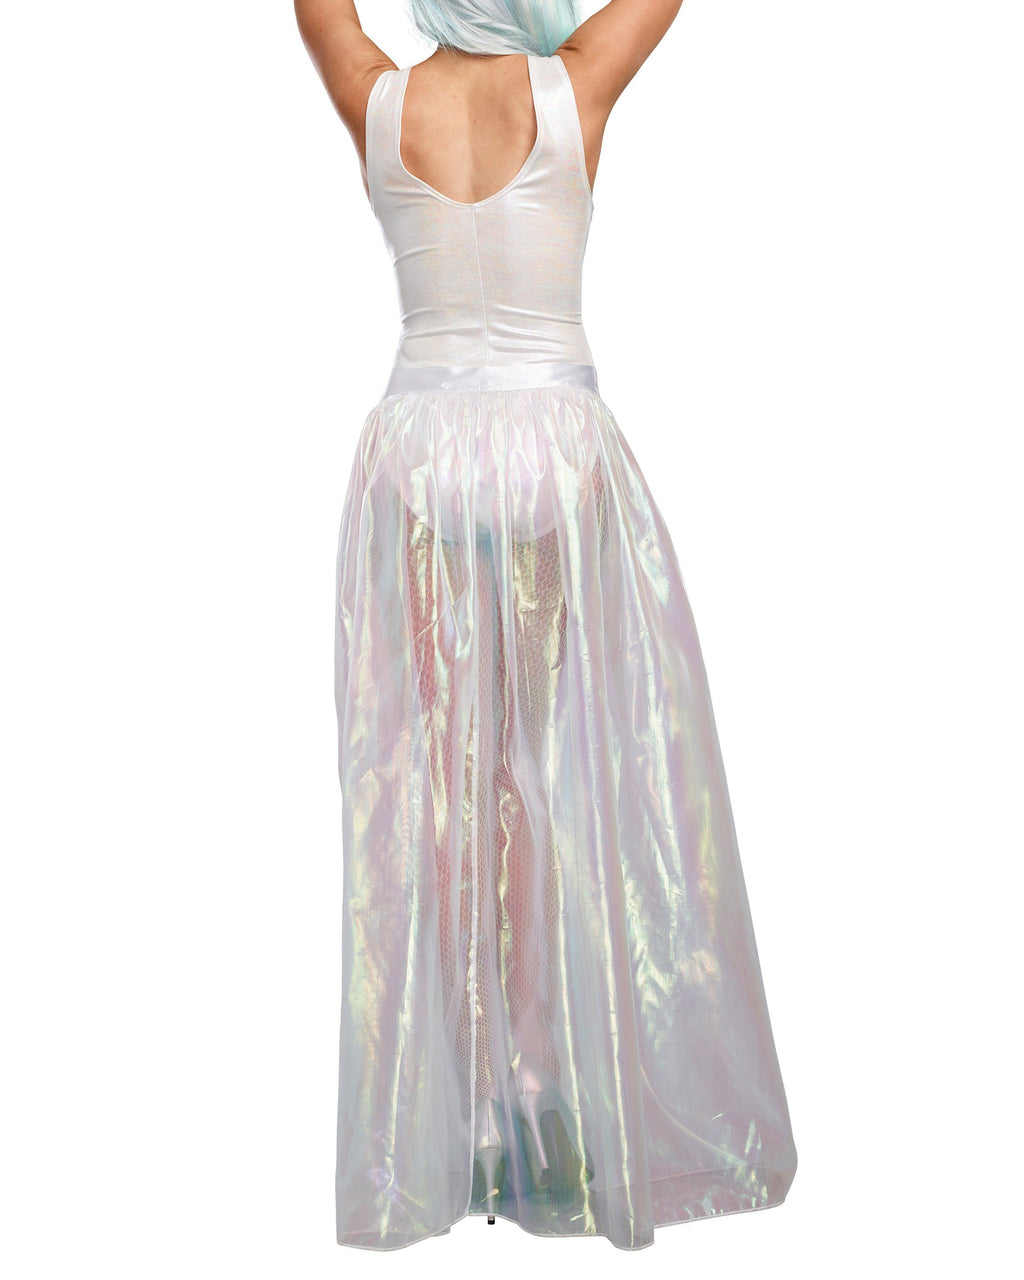 Iridescent Sparkly Maxi Skirt Costume Accessory Dreamgirl Costume